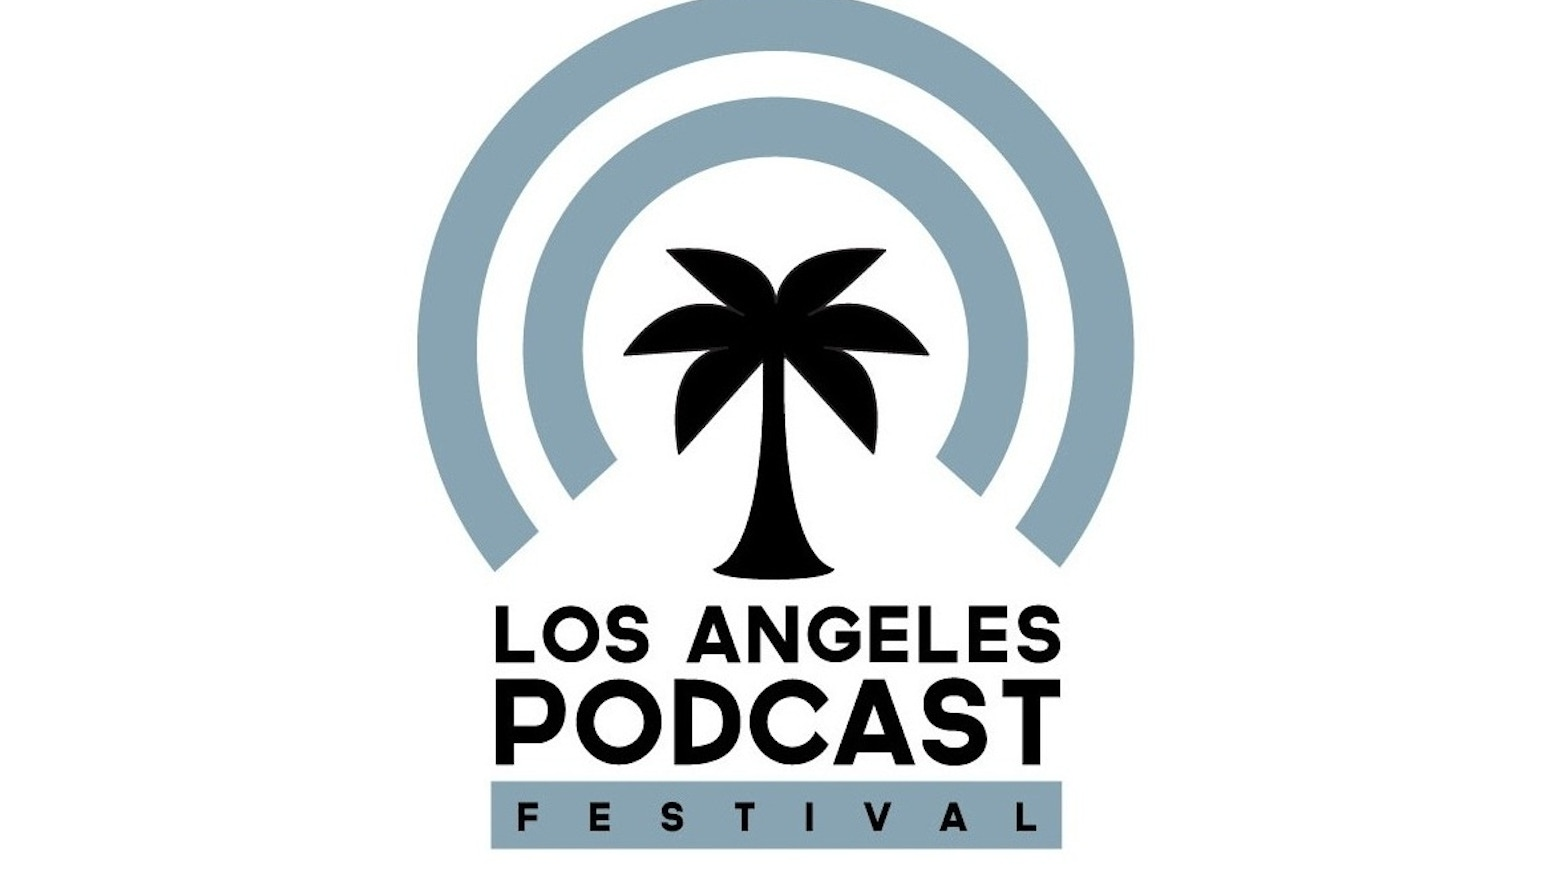 Los Angeles Podcast Festival By Elwood, Mancini, Anthony